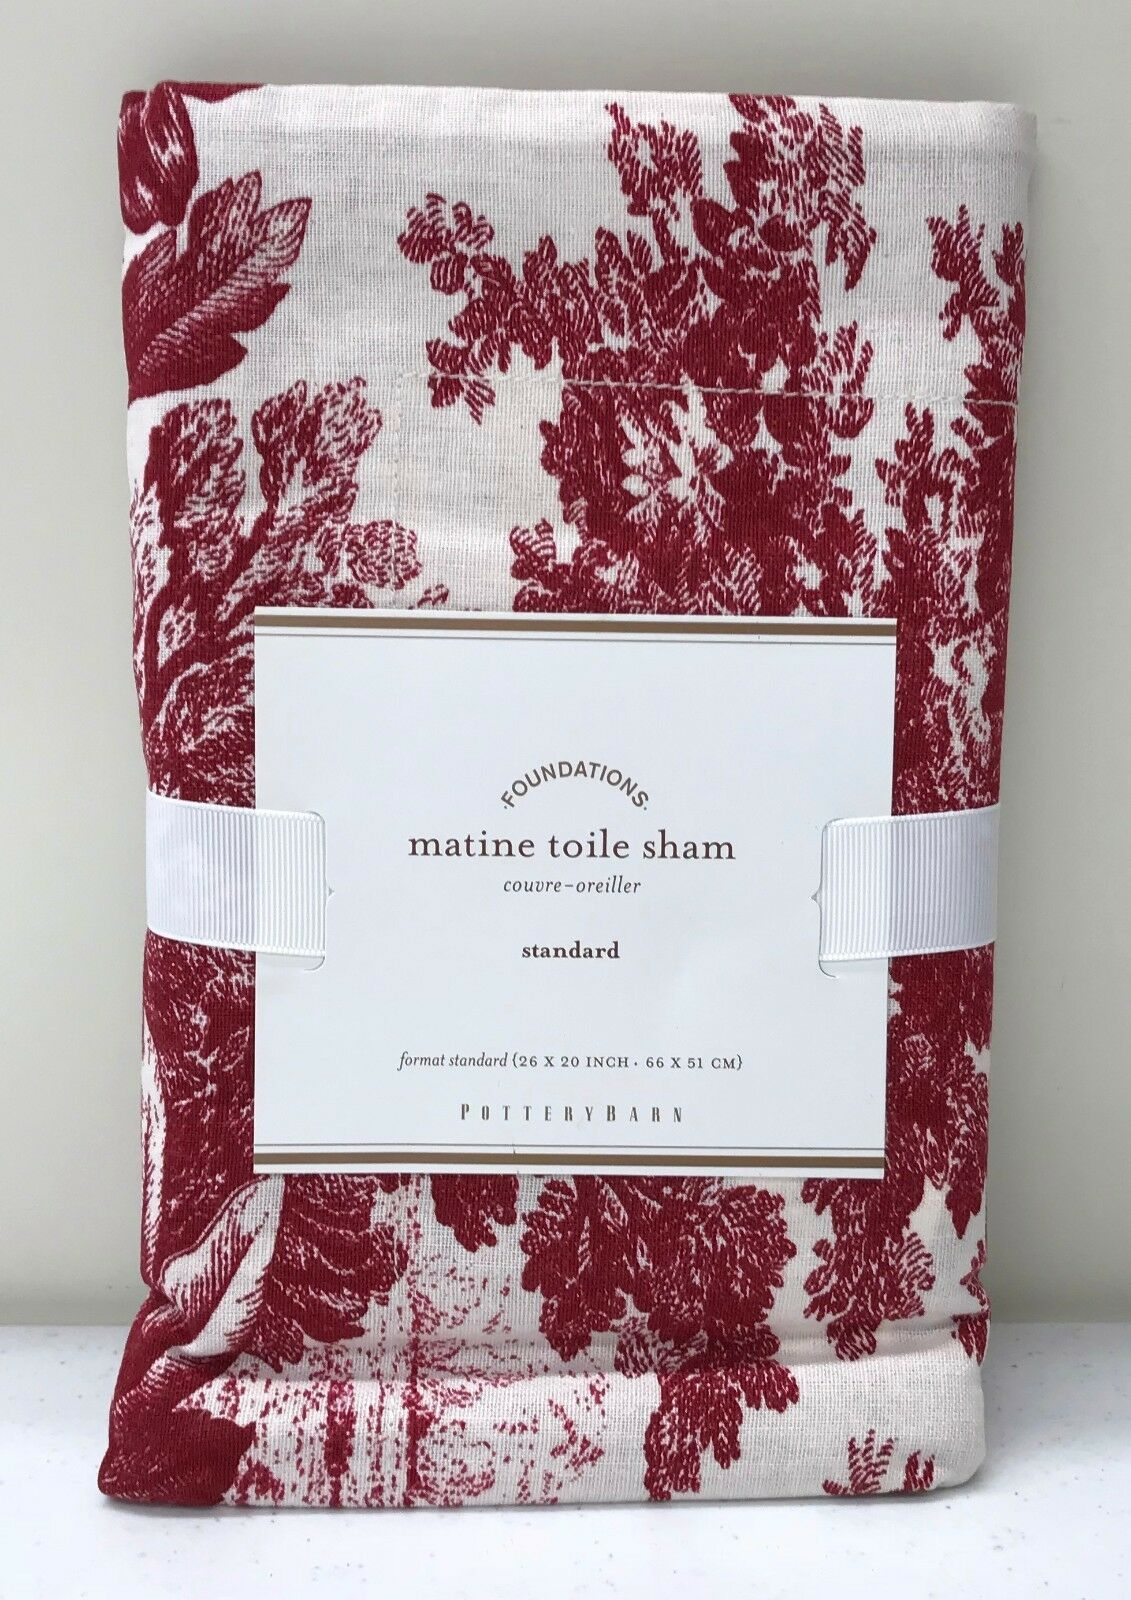 NEW Pottery Barn Matine Toile STANDARD Sham, RED